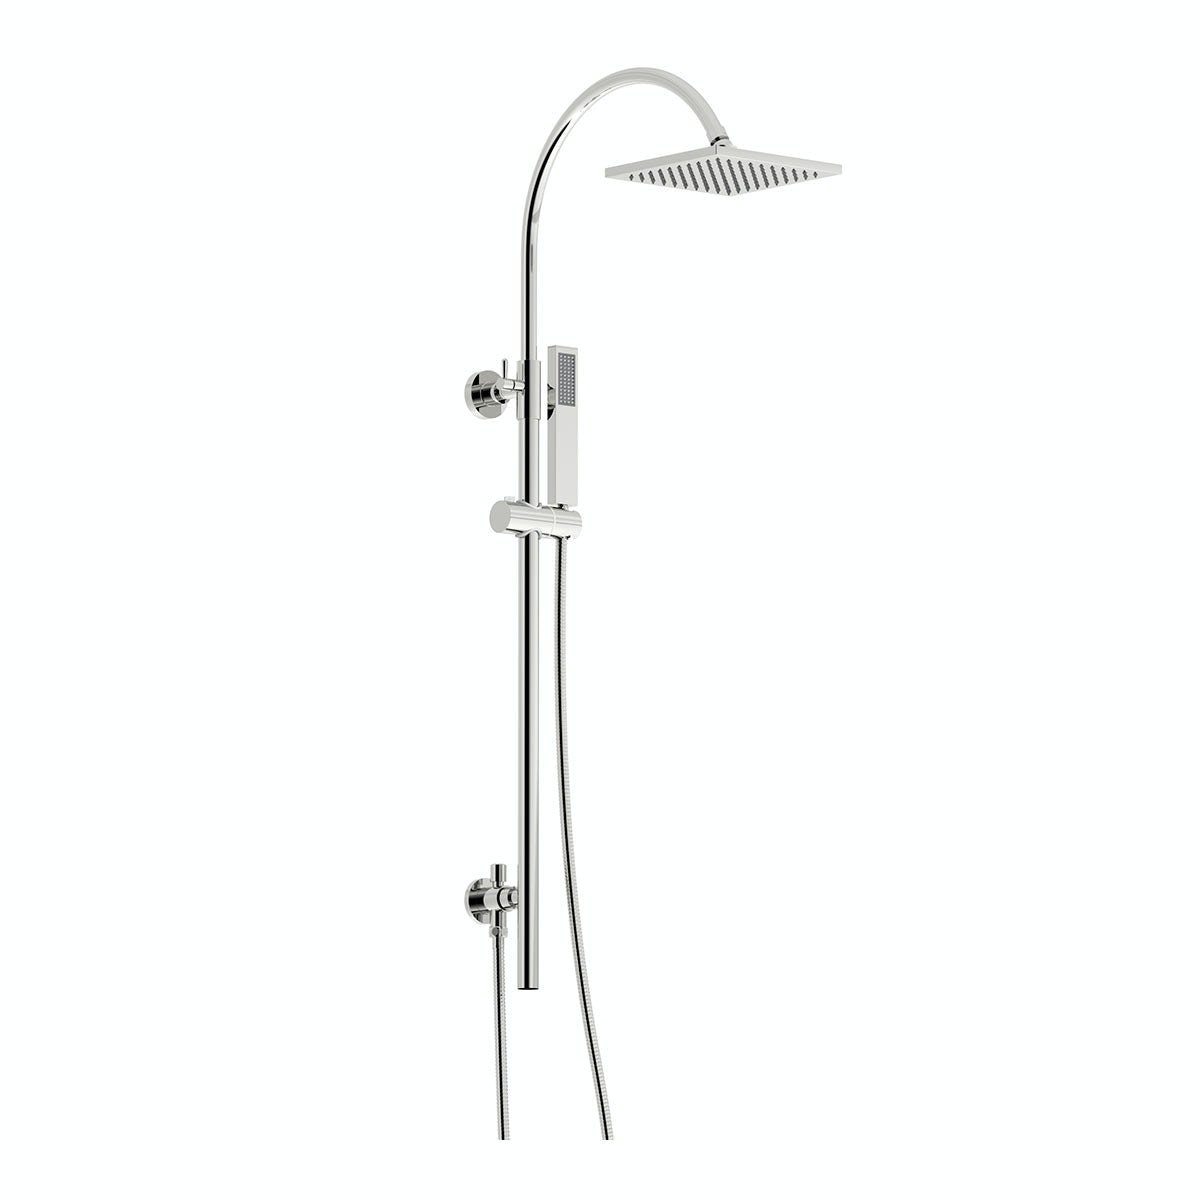 Mode Aria square shower riser kit